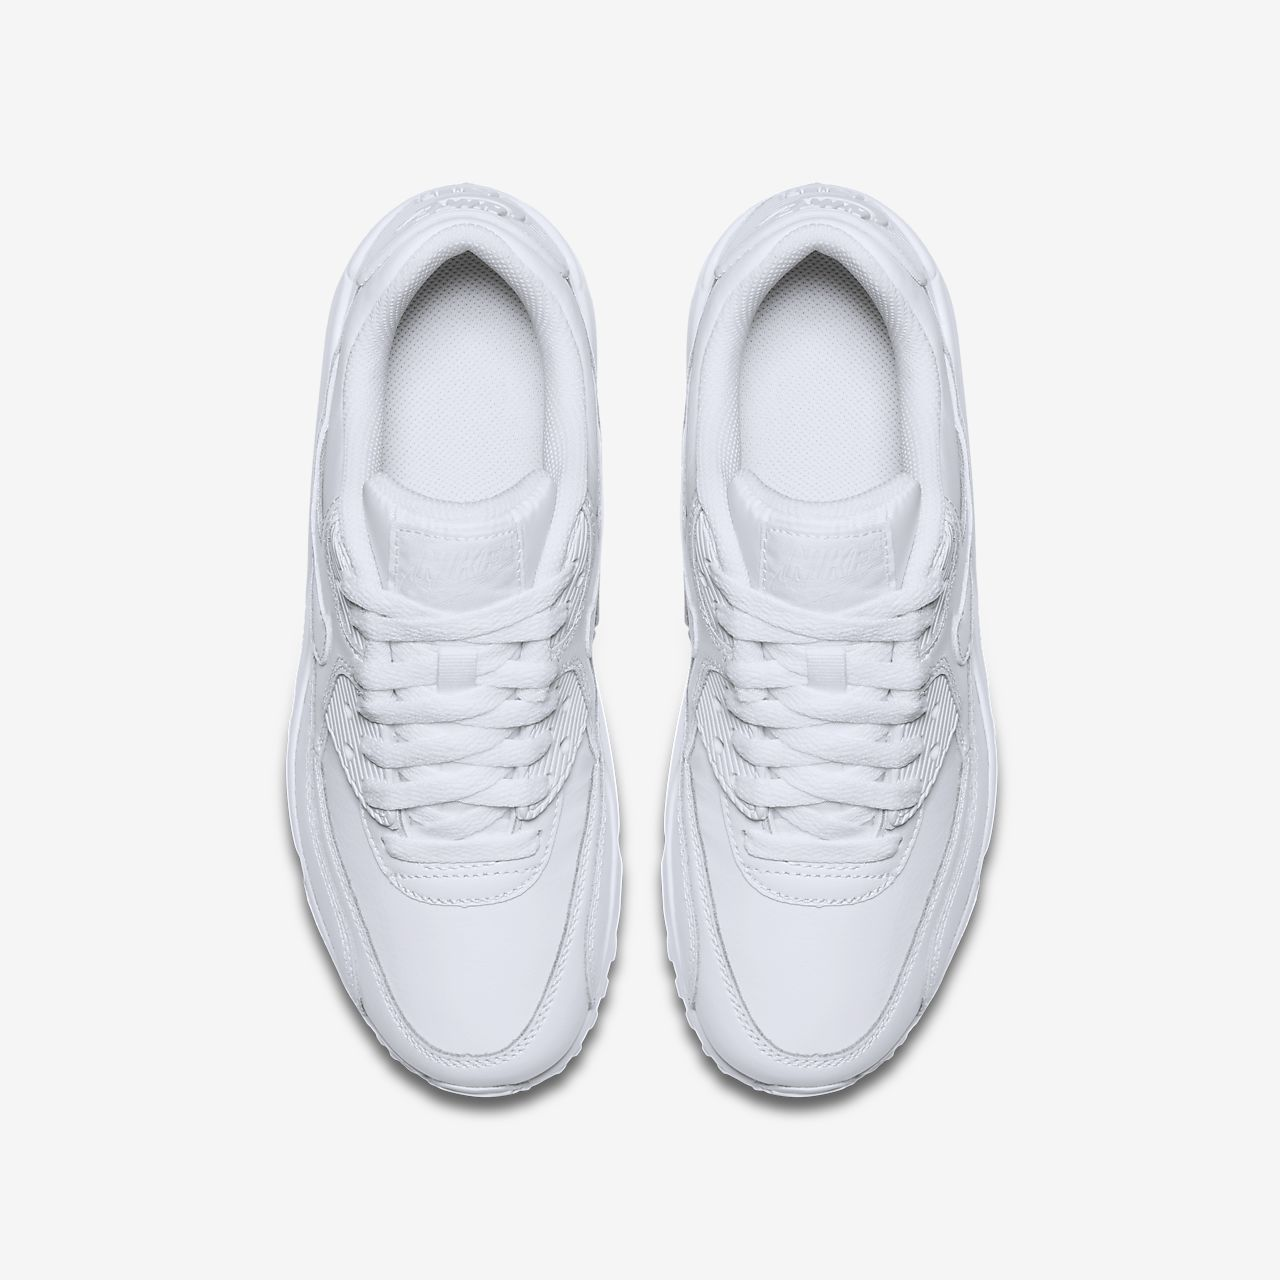 Nike White Nike Air Max 90 Leather Infants Trainers